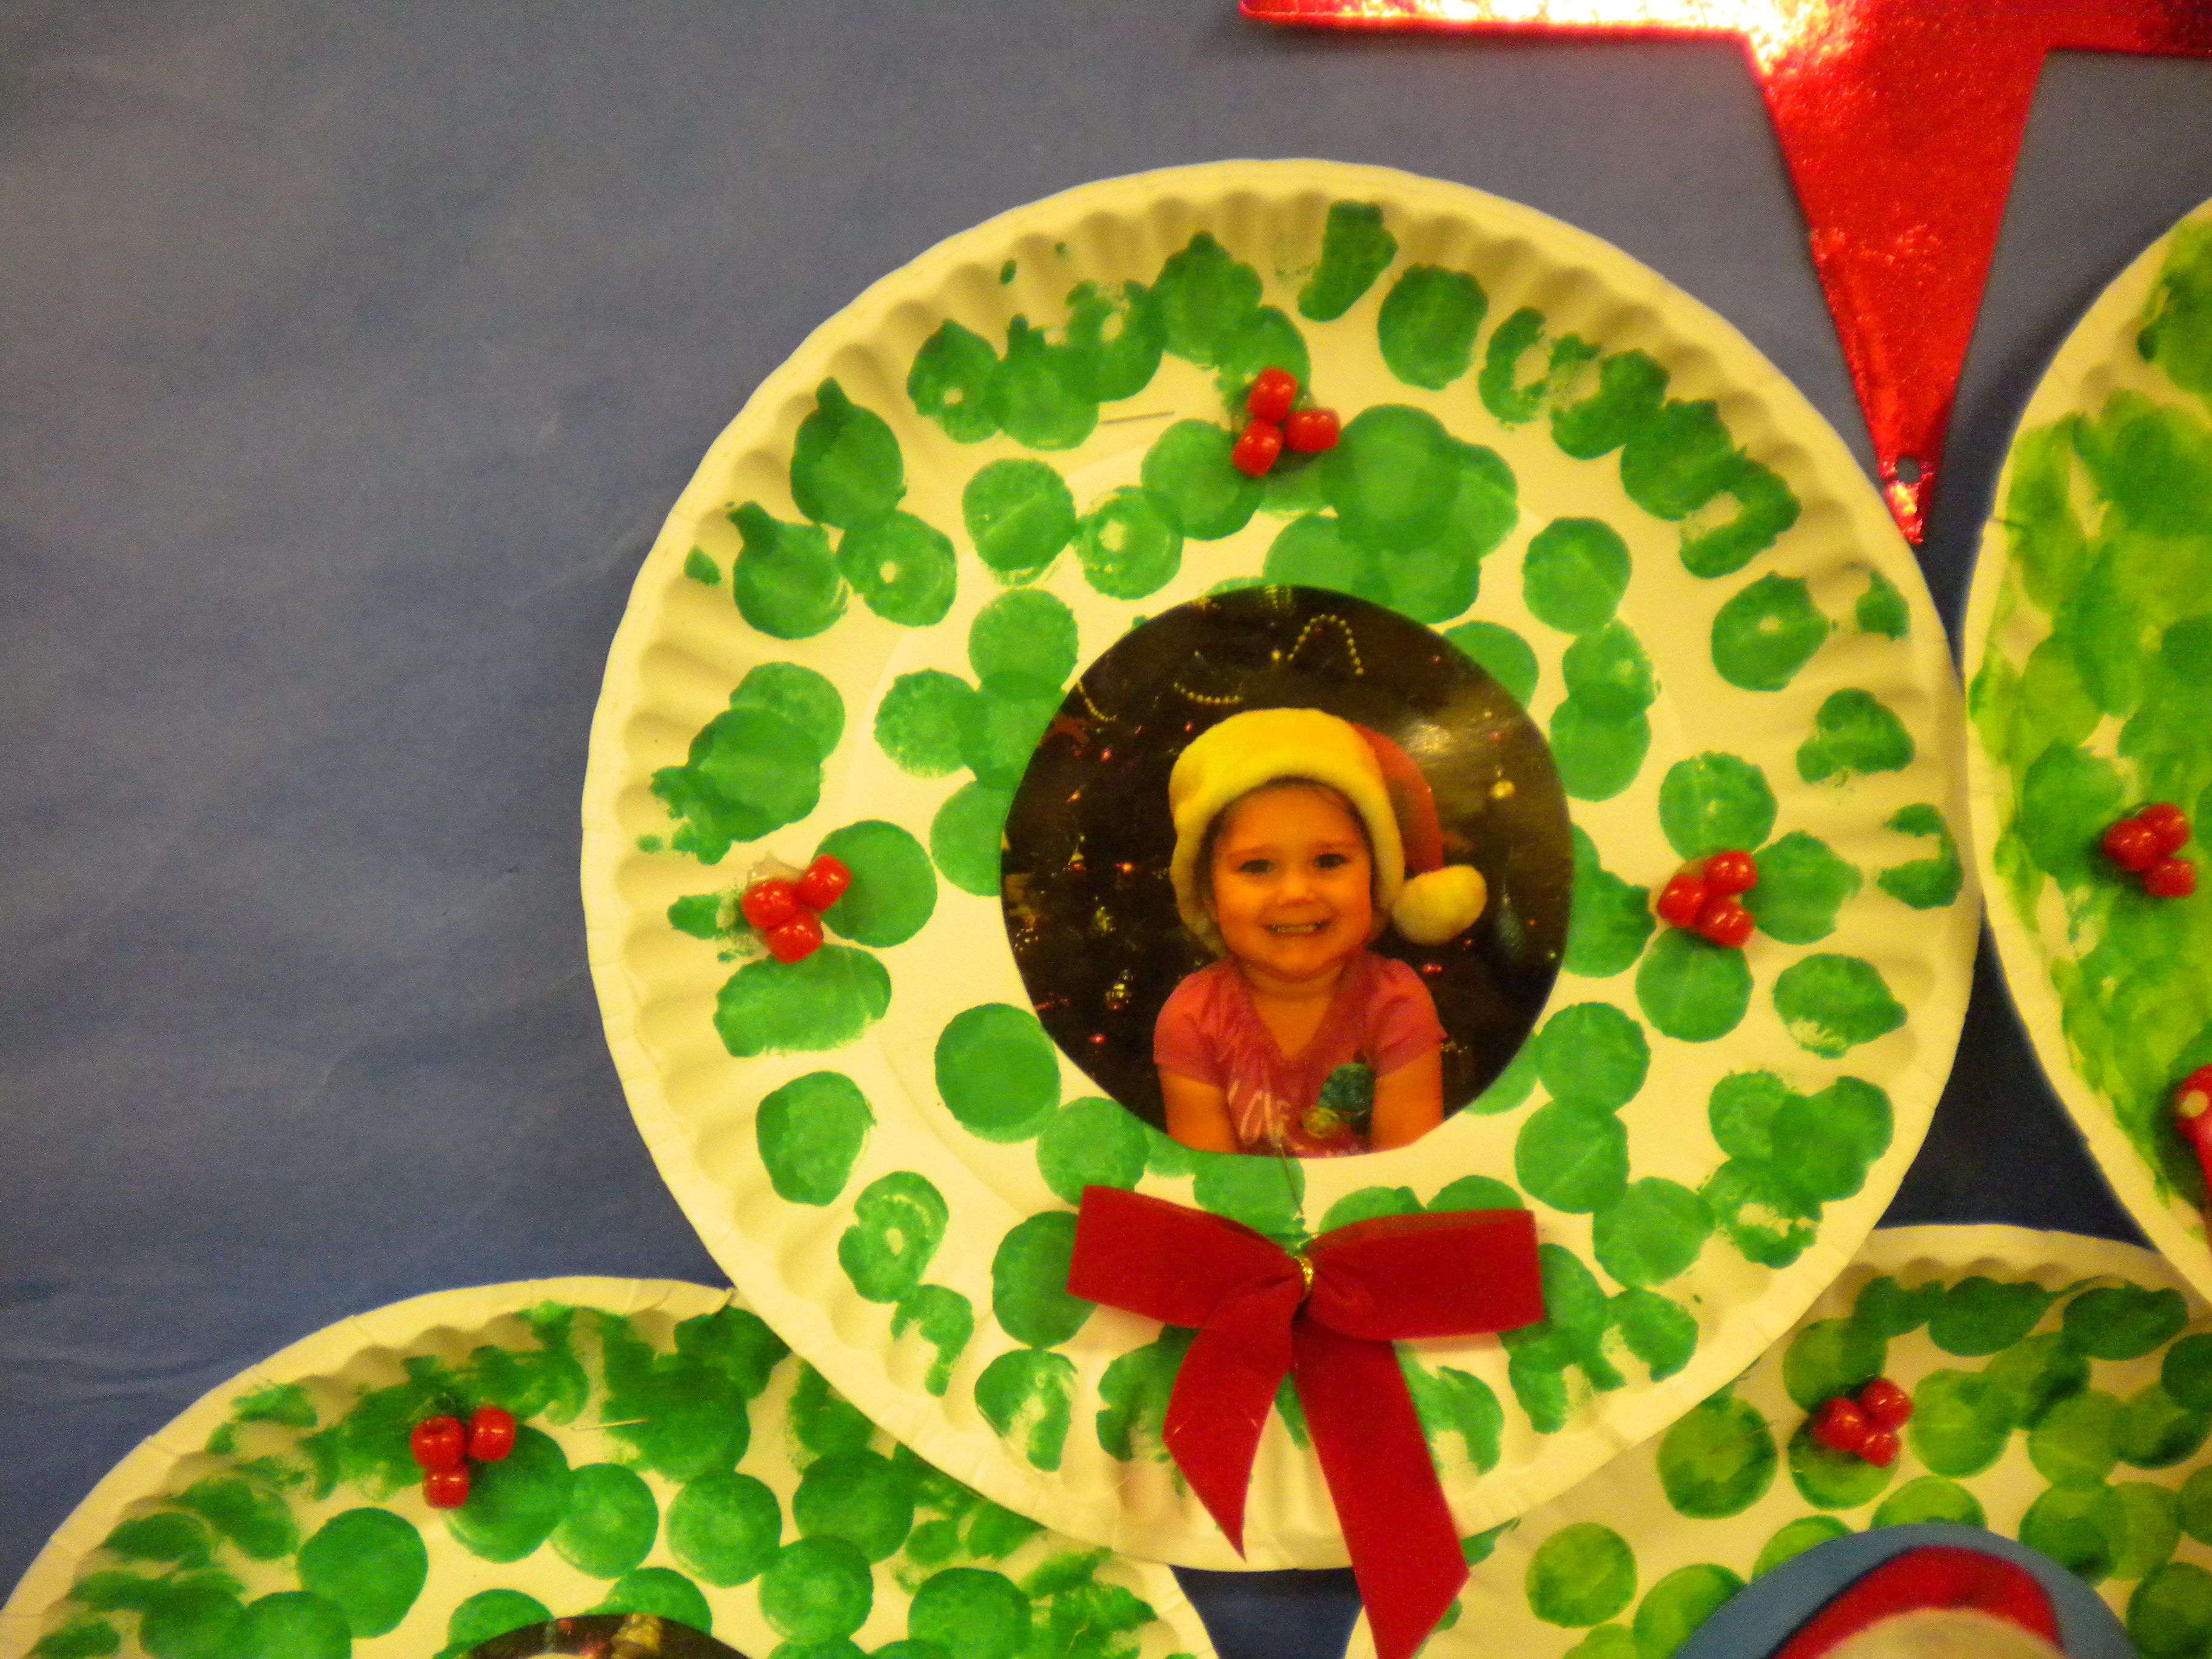 This Is A Close Up View Of Christmas Wreath On Bulletin